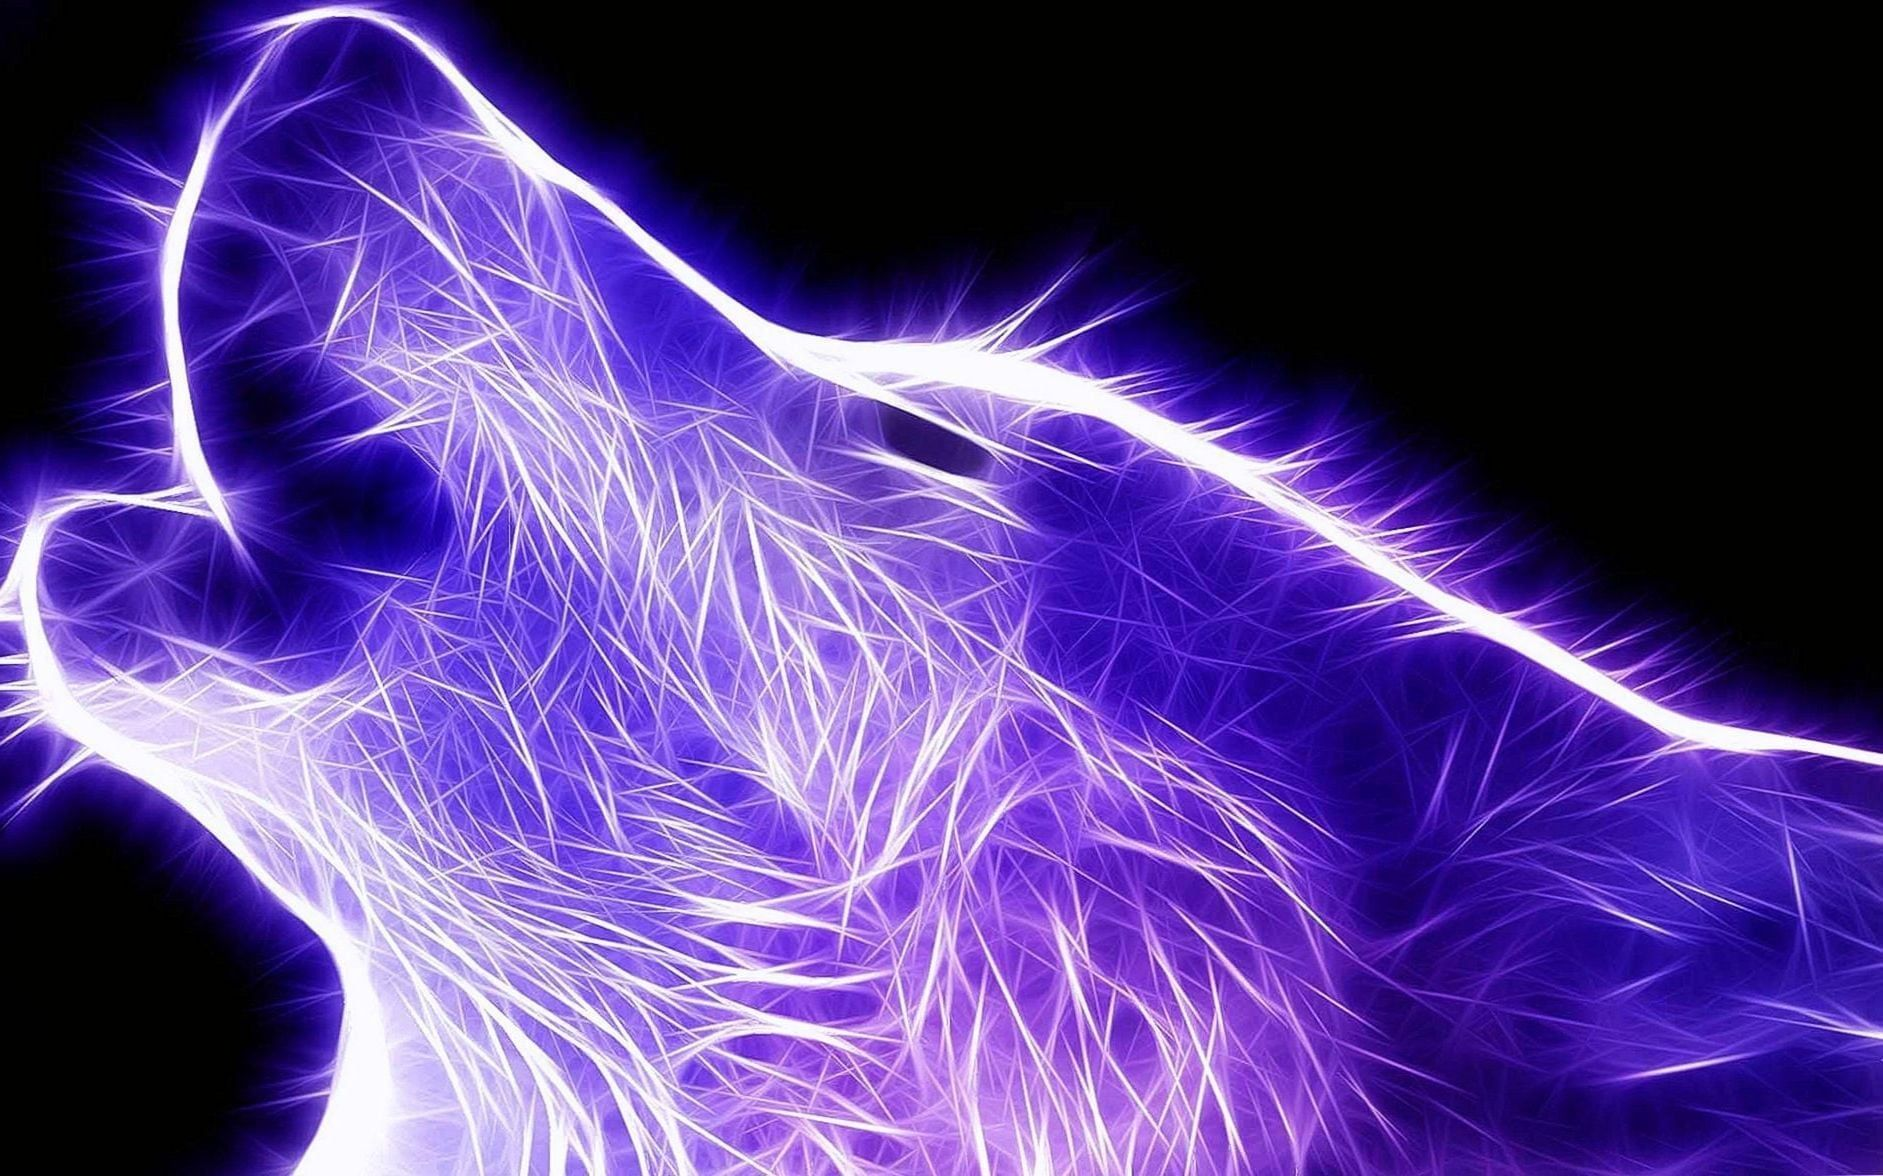 Cool Electric Wolf Wallpapers Cool Electric Wolf Wallpapers Animal Wallpaper Wolf Wallpapers Eyes Wallpaper